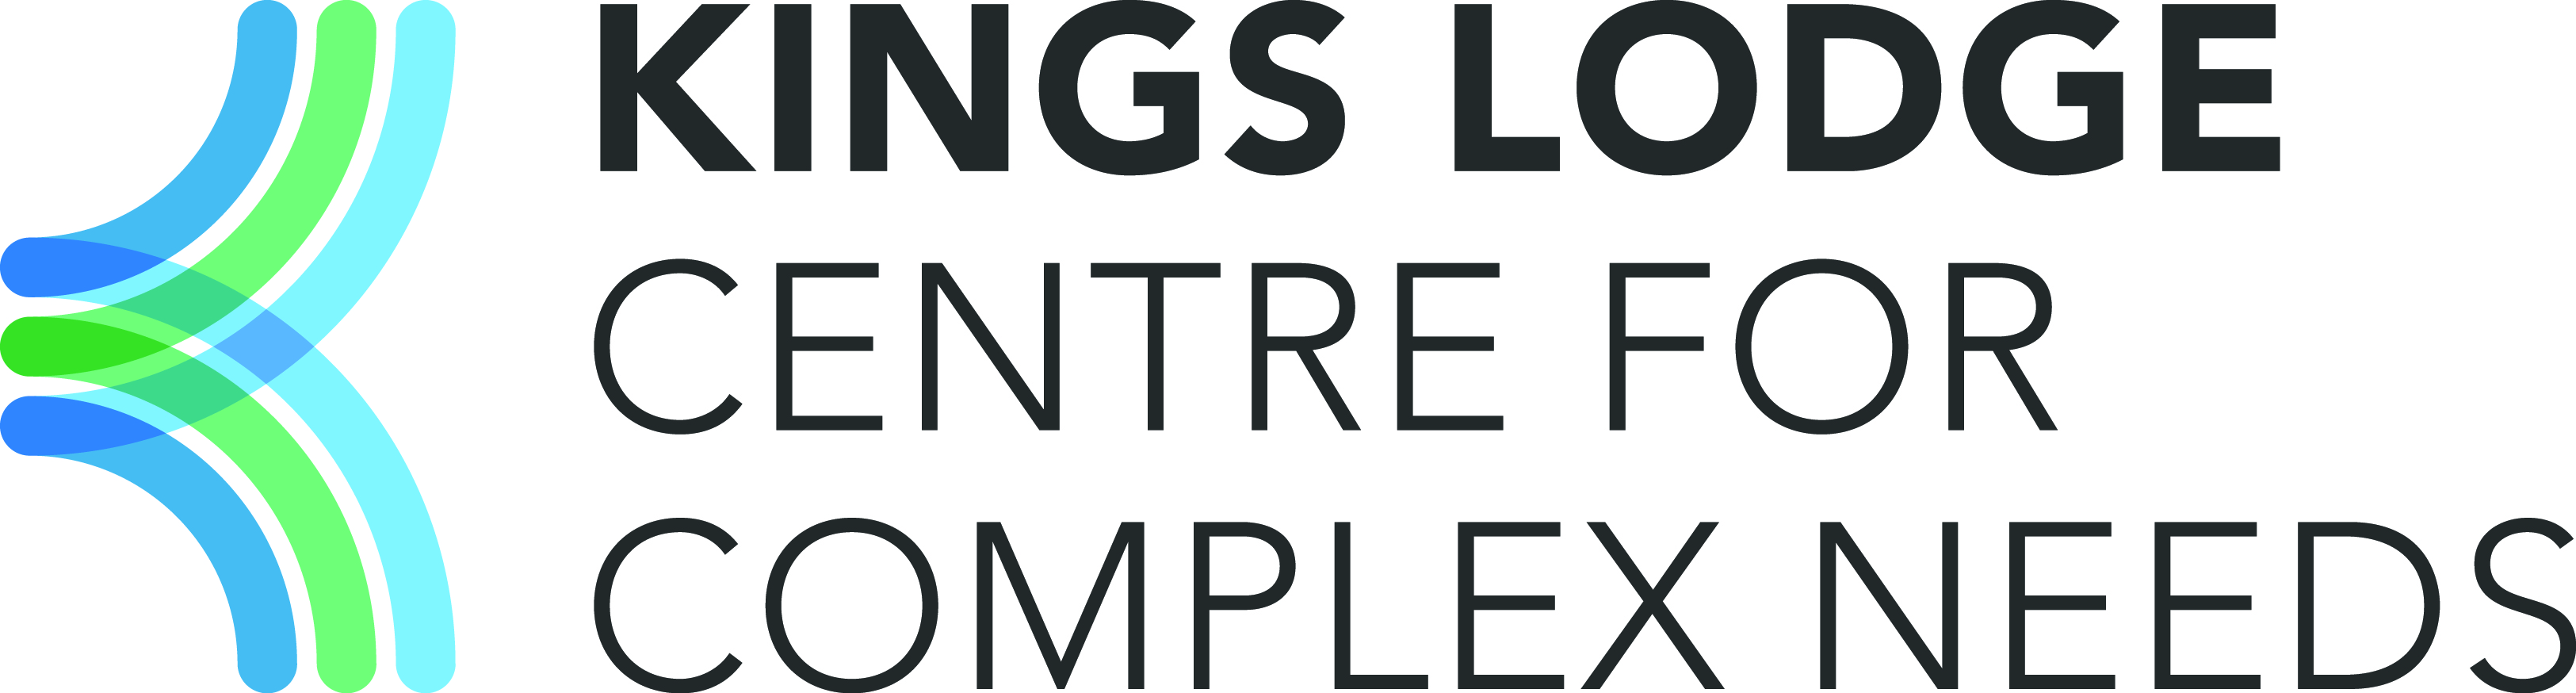 Kings Lodge Centre for Complex Needs, South Nutfield RH1